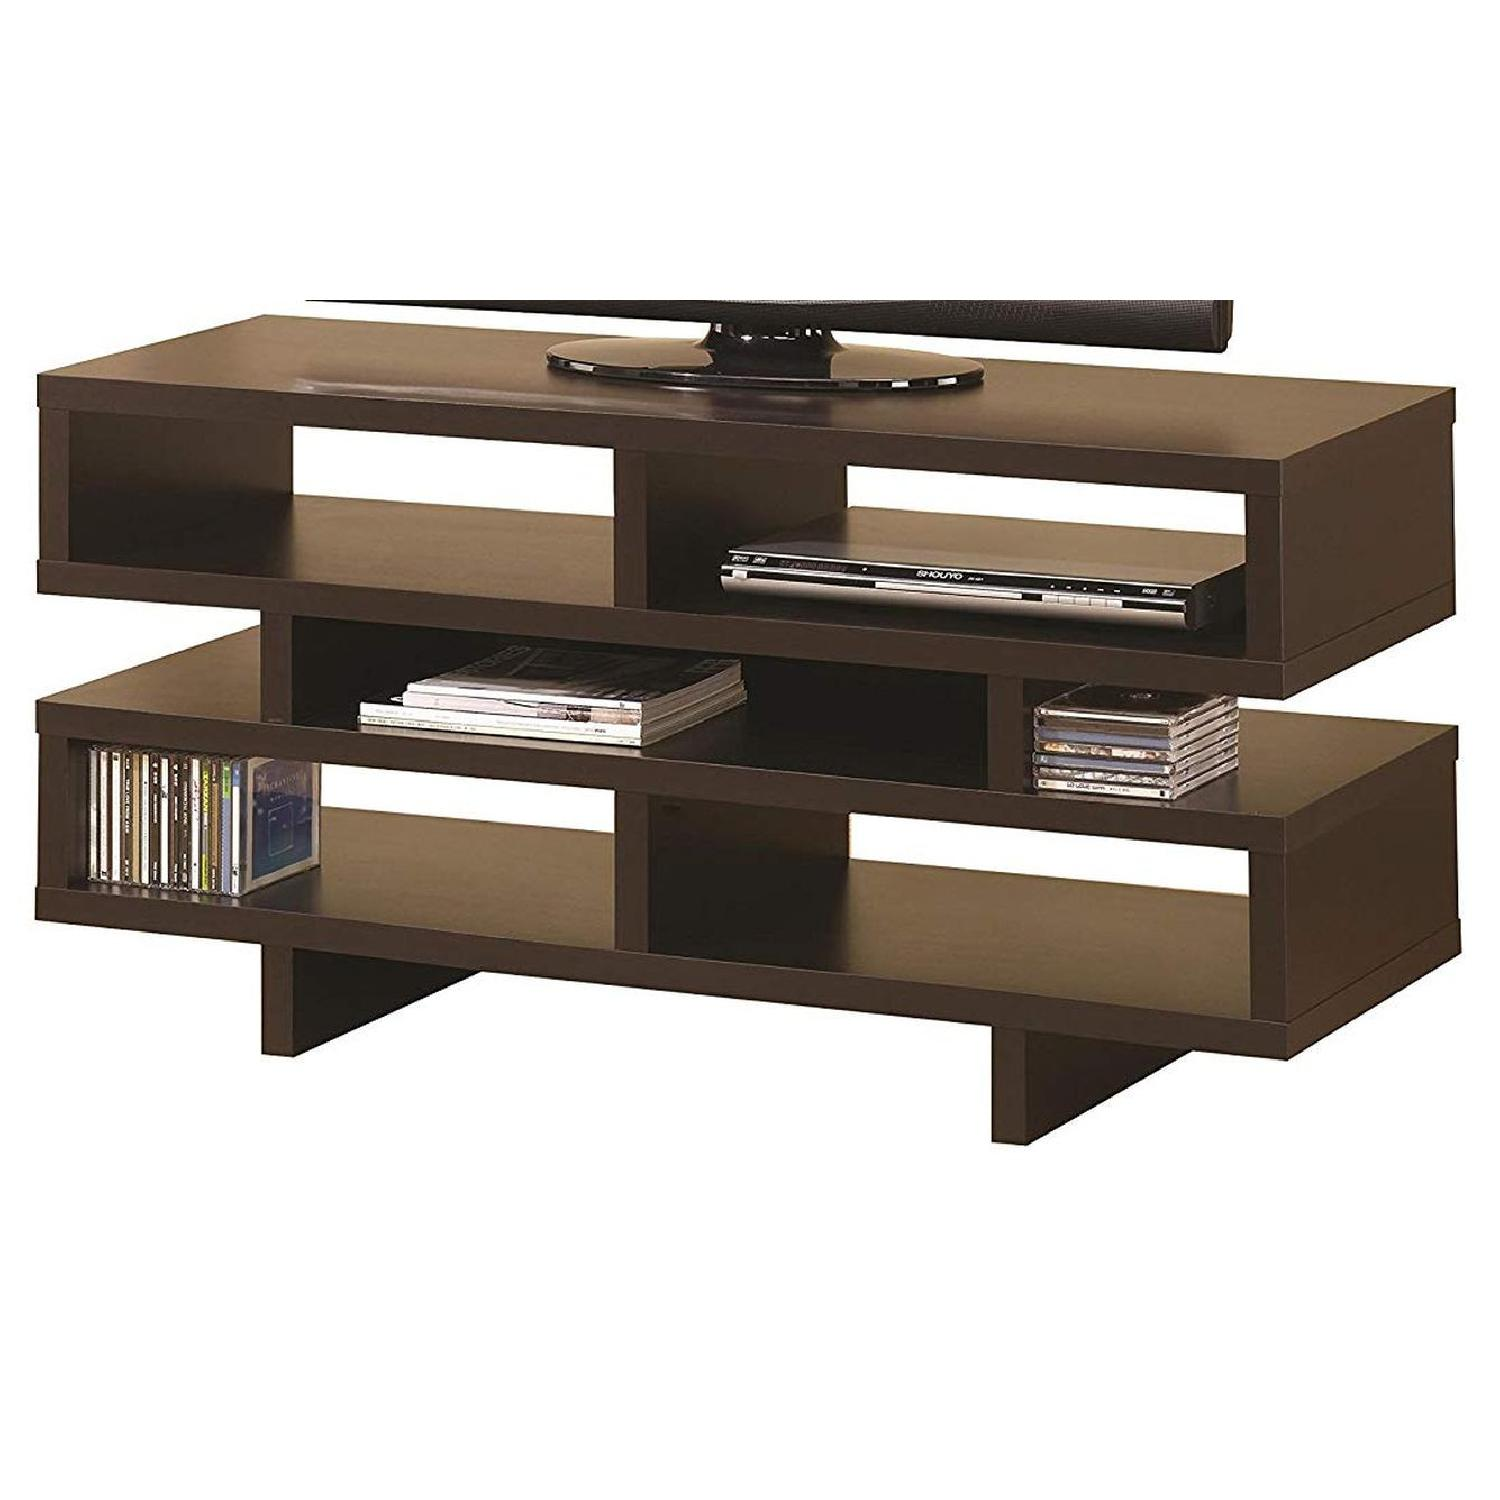 TV Stand In Rustic Oak Finish w/ 2 Cabinets & 2 Drawers - image-9